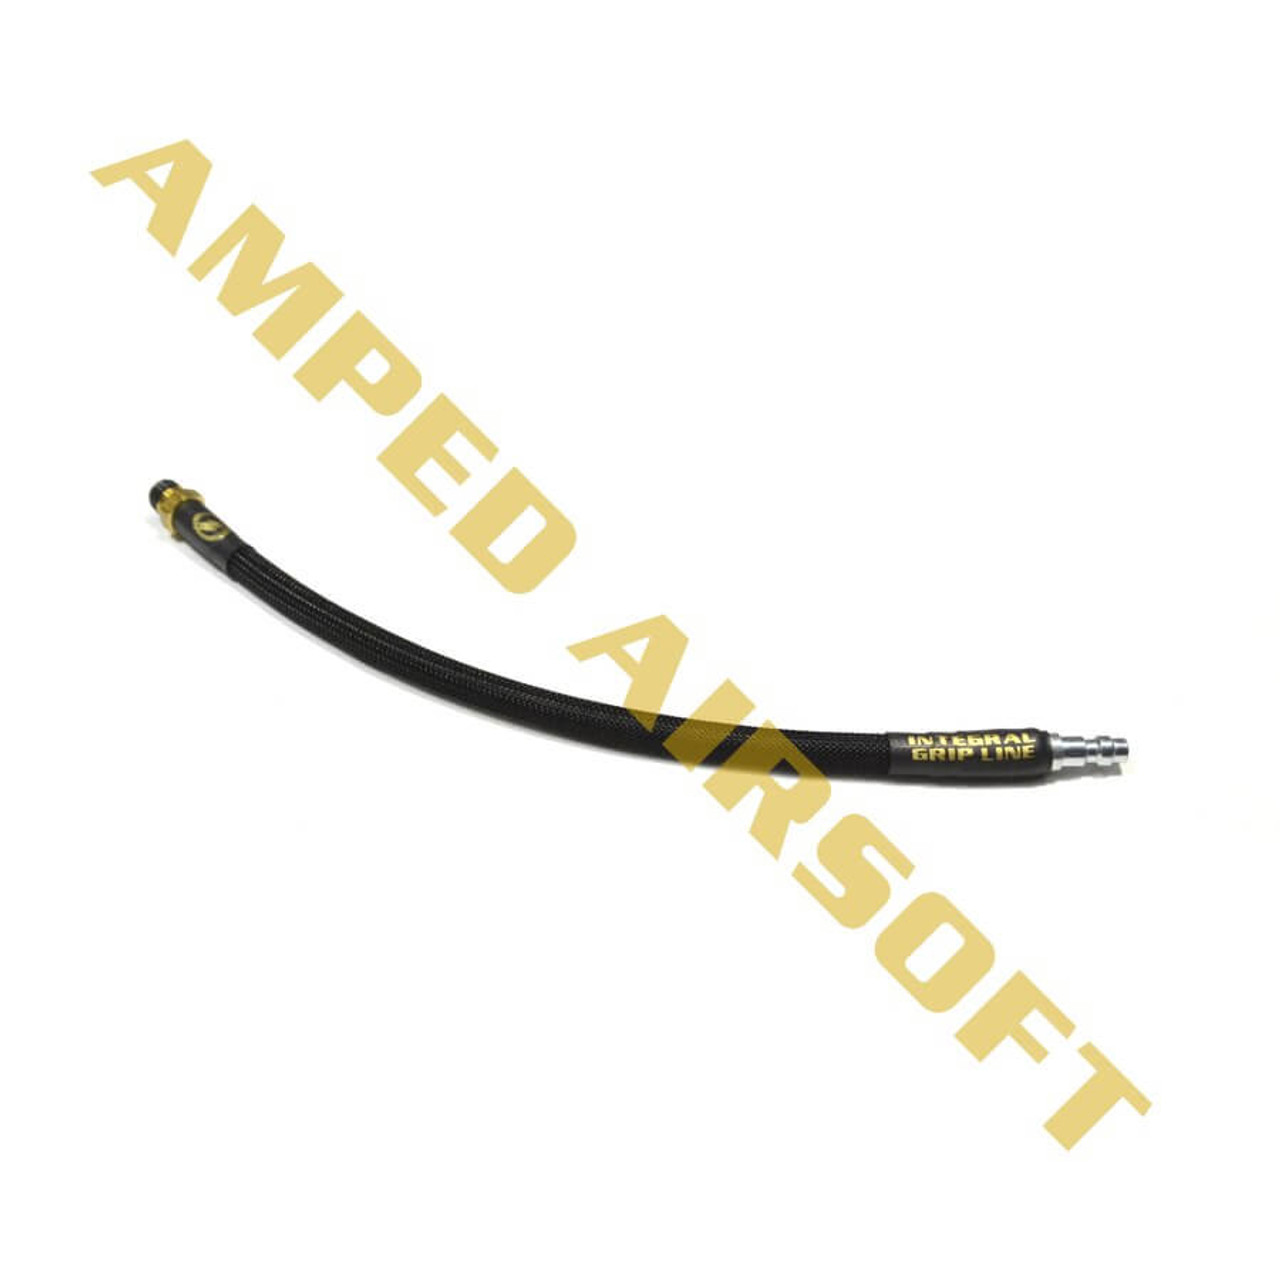 Amped Custom - HPA Integral Grip Line (IGL) for Fusion Engine M249